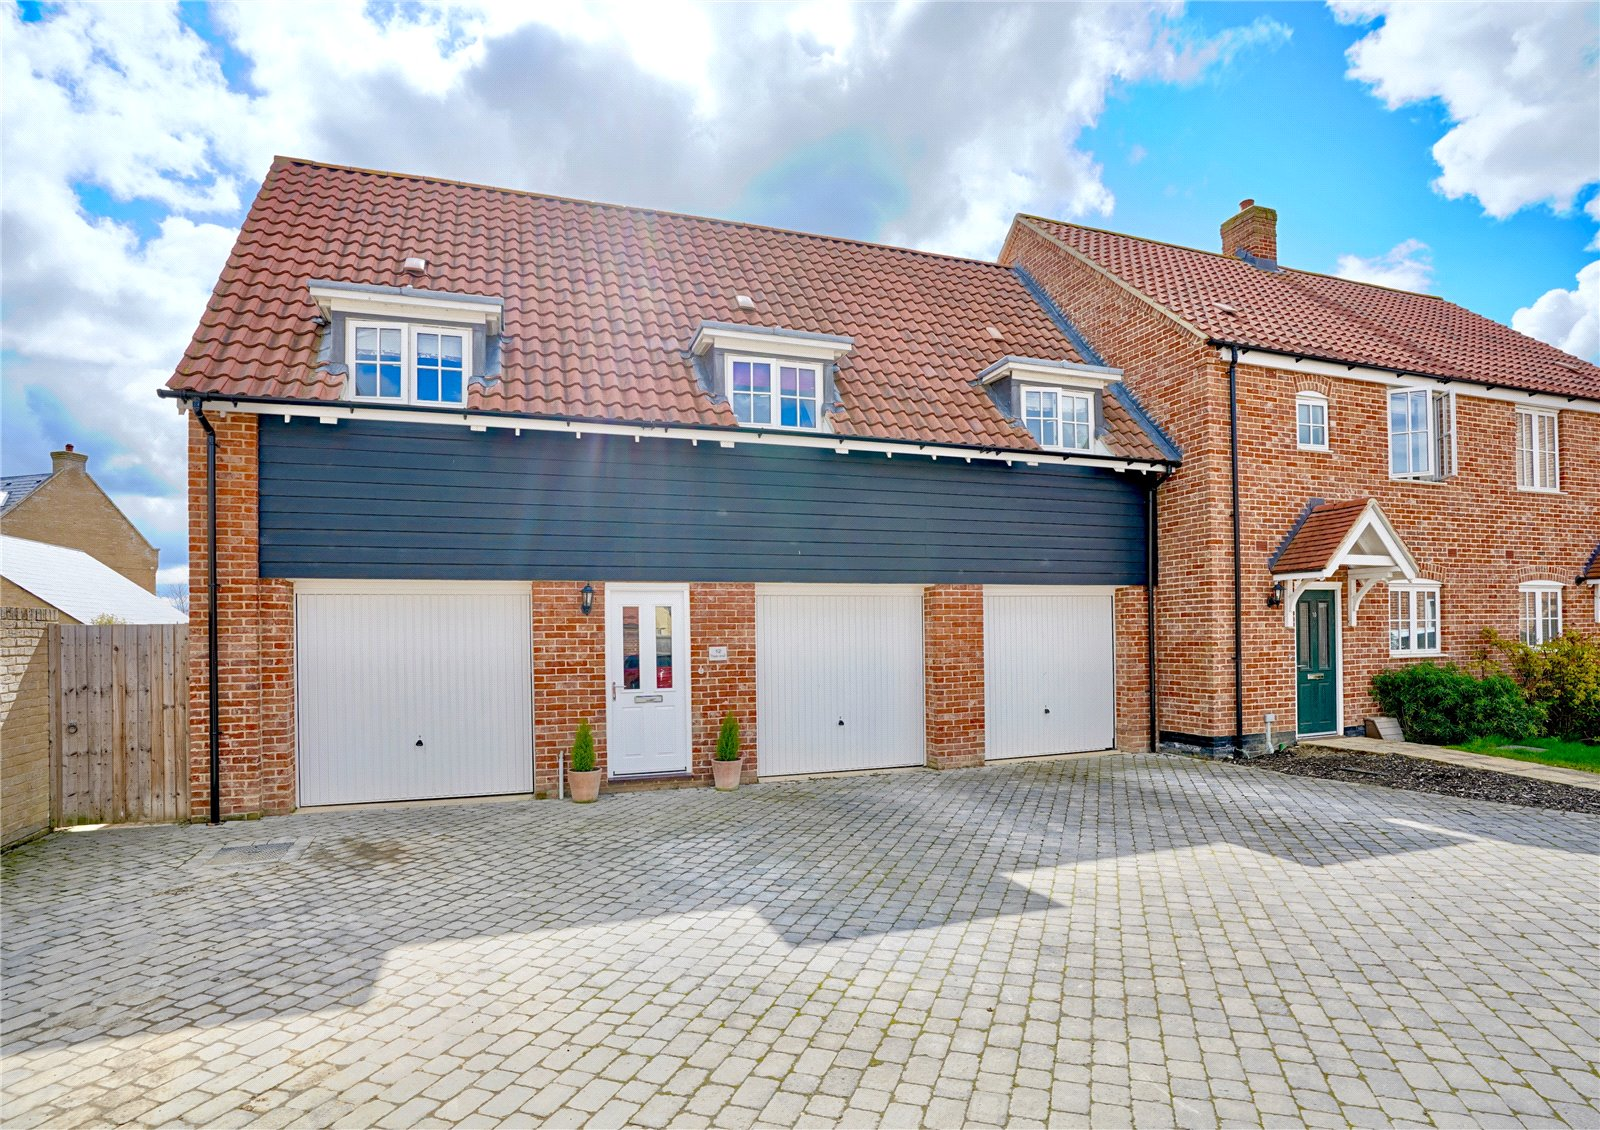 2 bed apartment for sale in Alconbury Weald, PE28 4XU  - Property Image 1